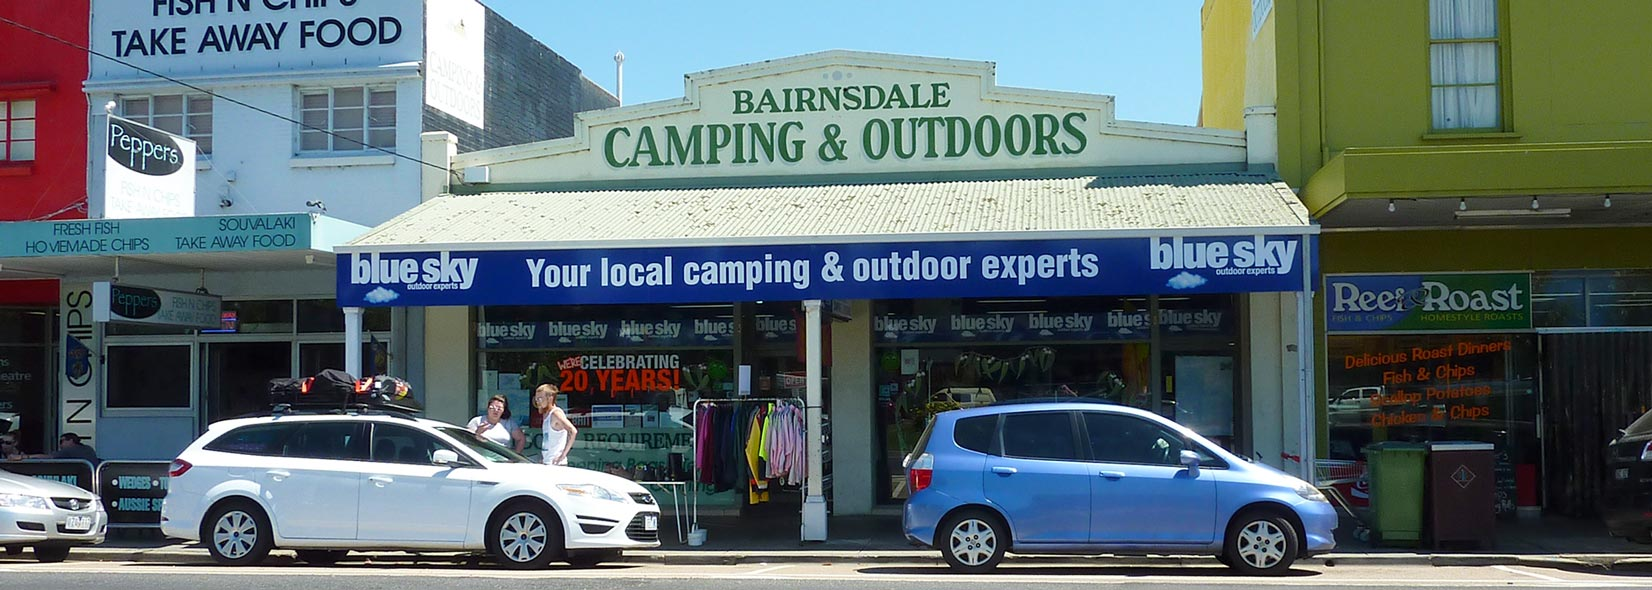 Bairnsdale Camping and Outdoors, 220 Main Street, Bairnsdale, East Gippsland, Victoria